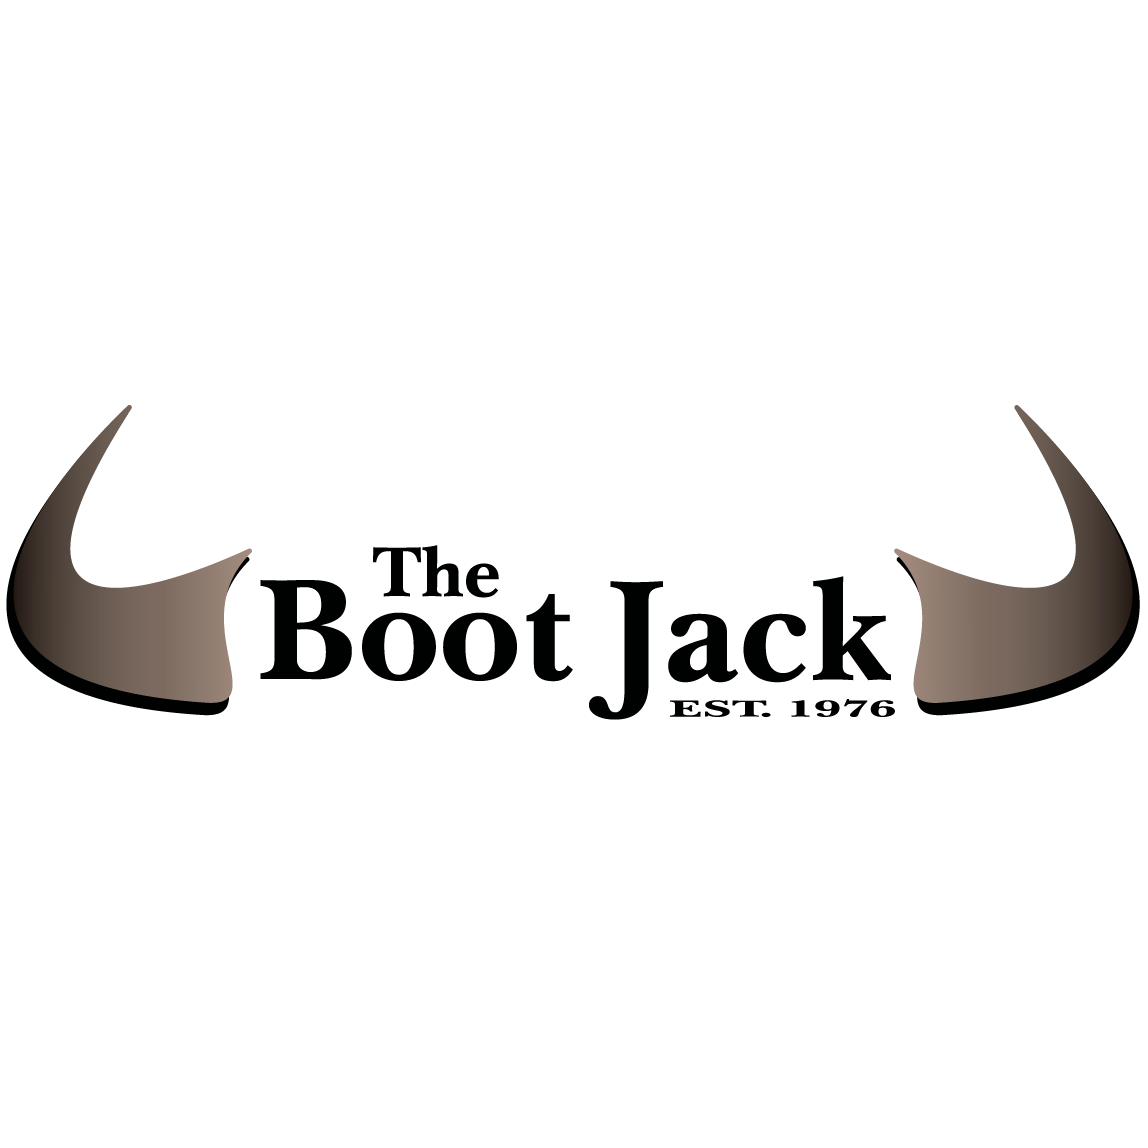 The Boot Jack